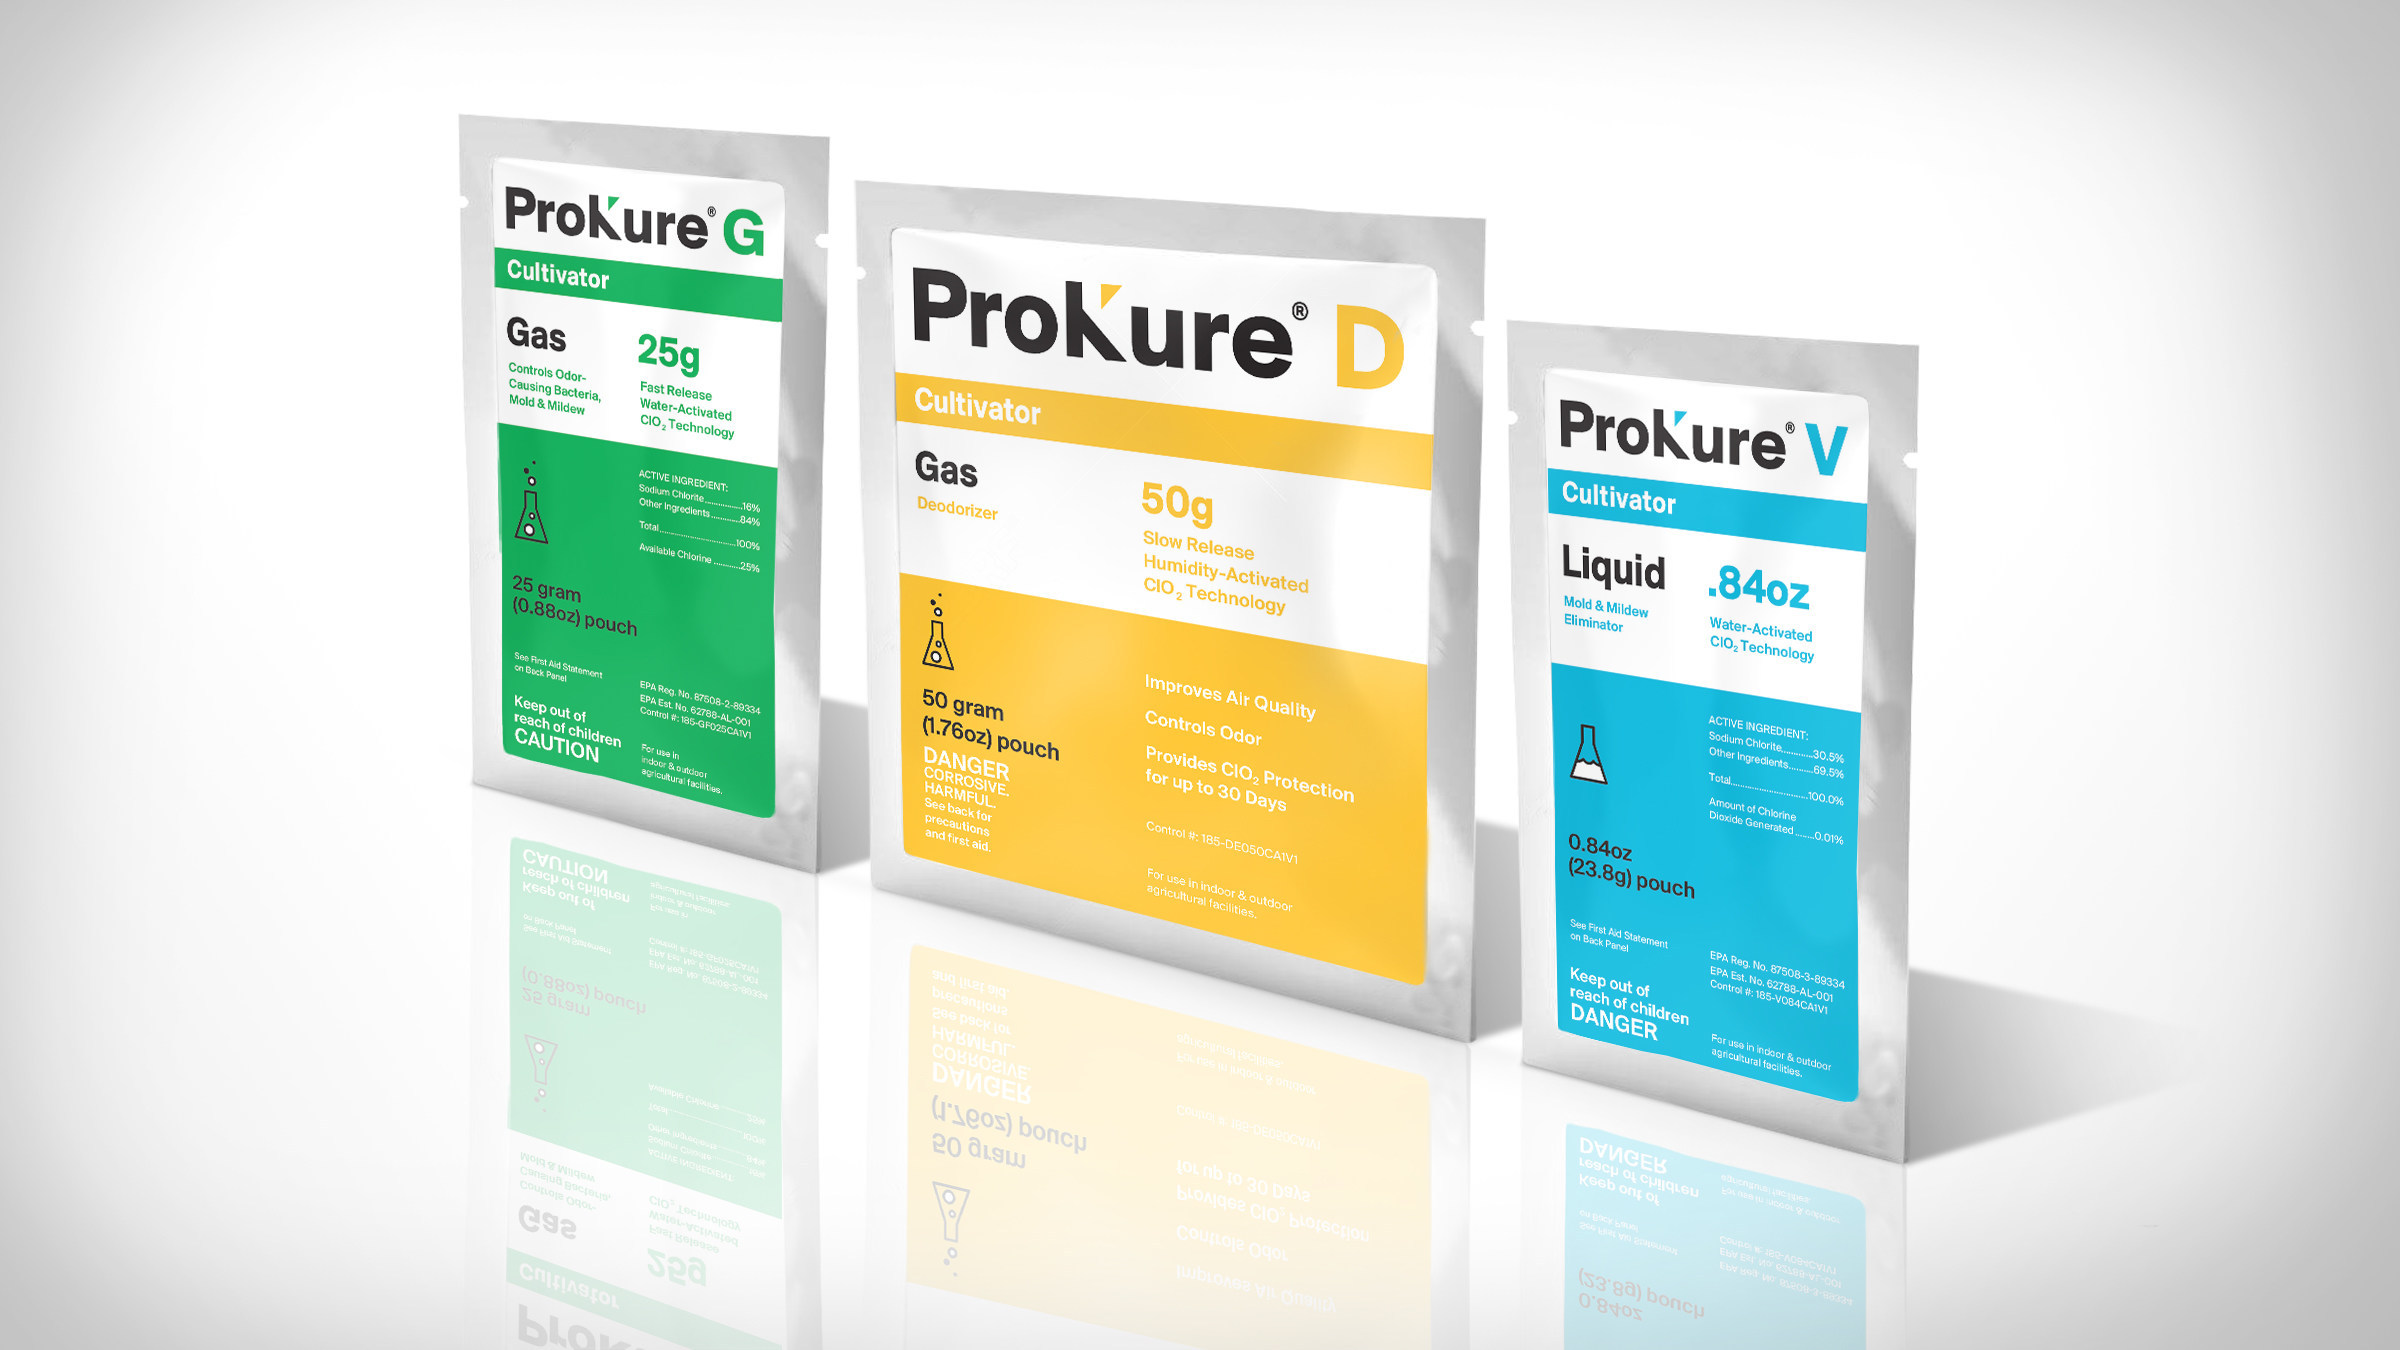 ProKure's Chief Science Officer Leads First Ever ASTM International Standards for Cleaning & Disinfecting Cannabis Cultivation Facilities